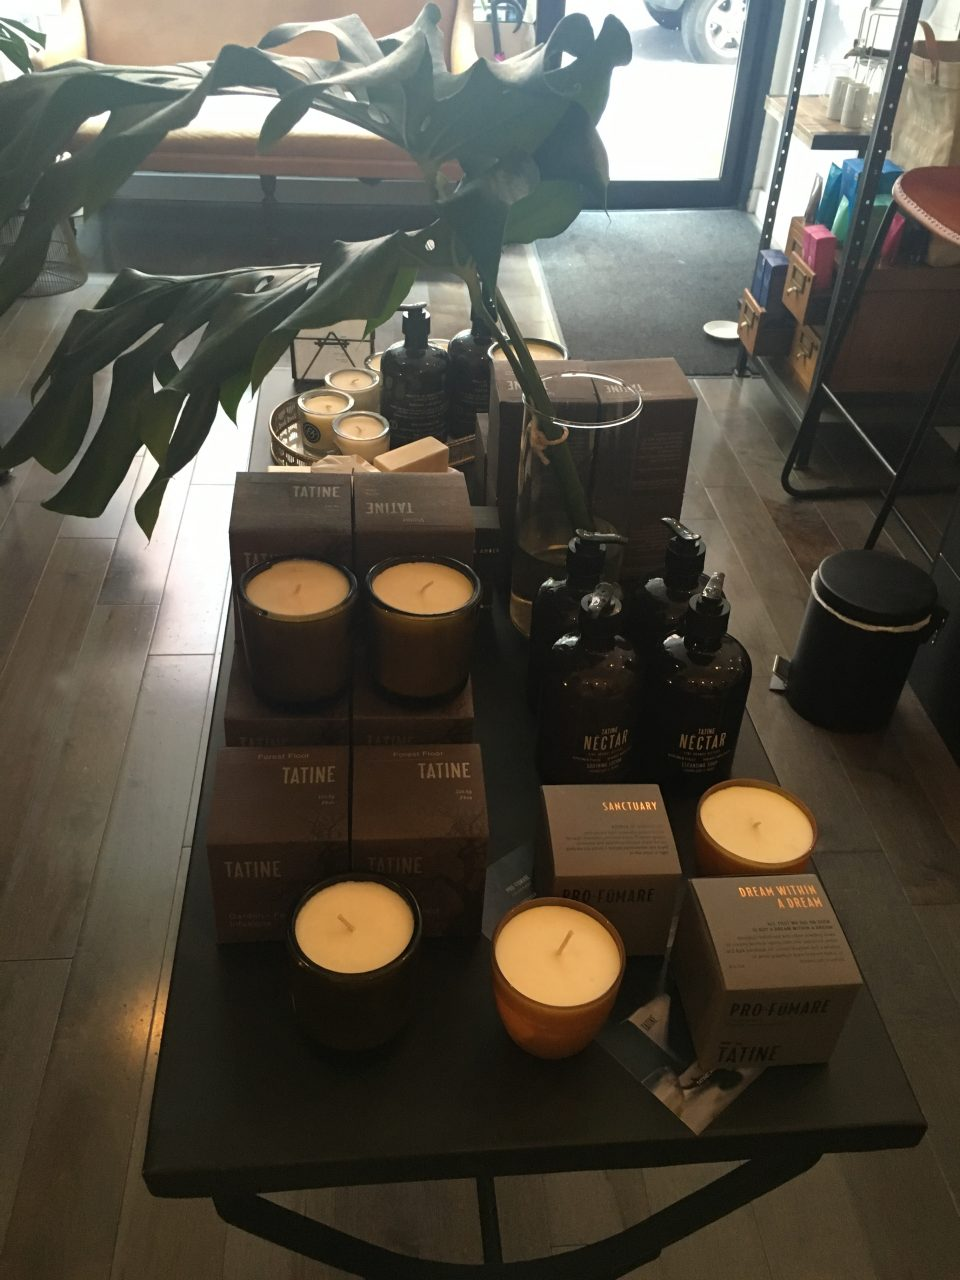 MITH smith & brit nyc wellness makeover spa